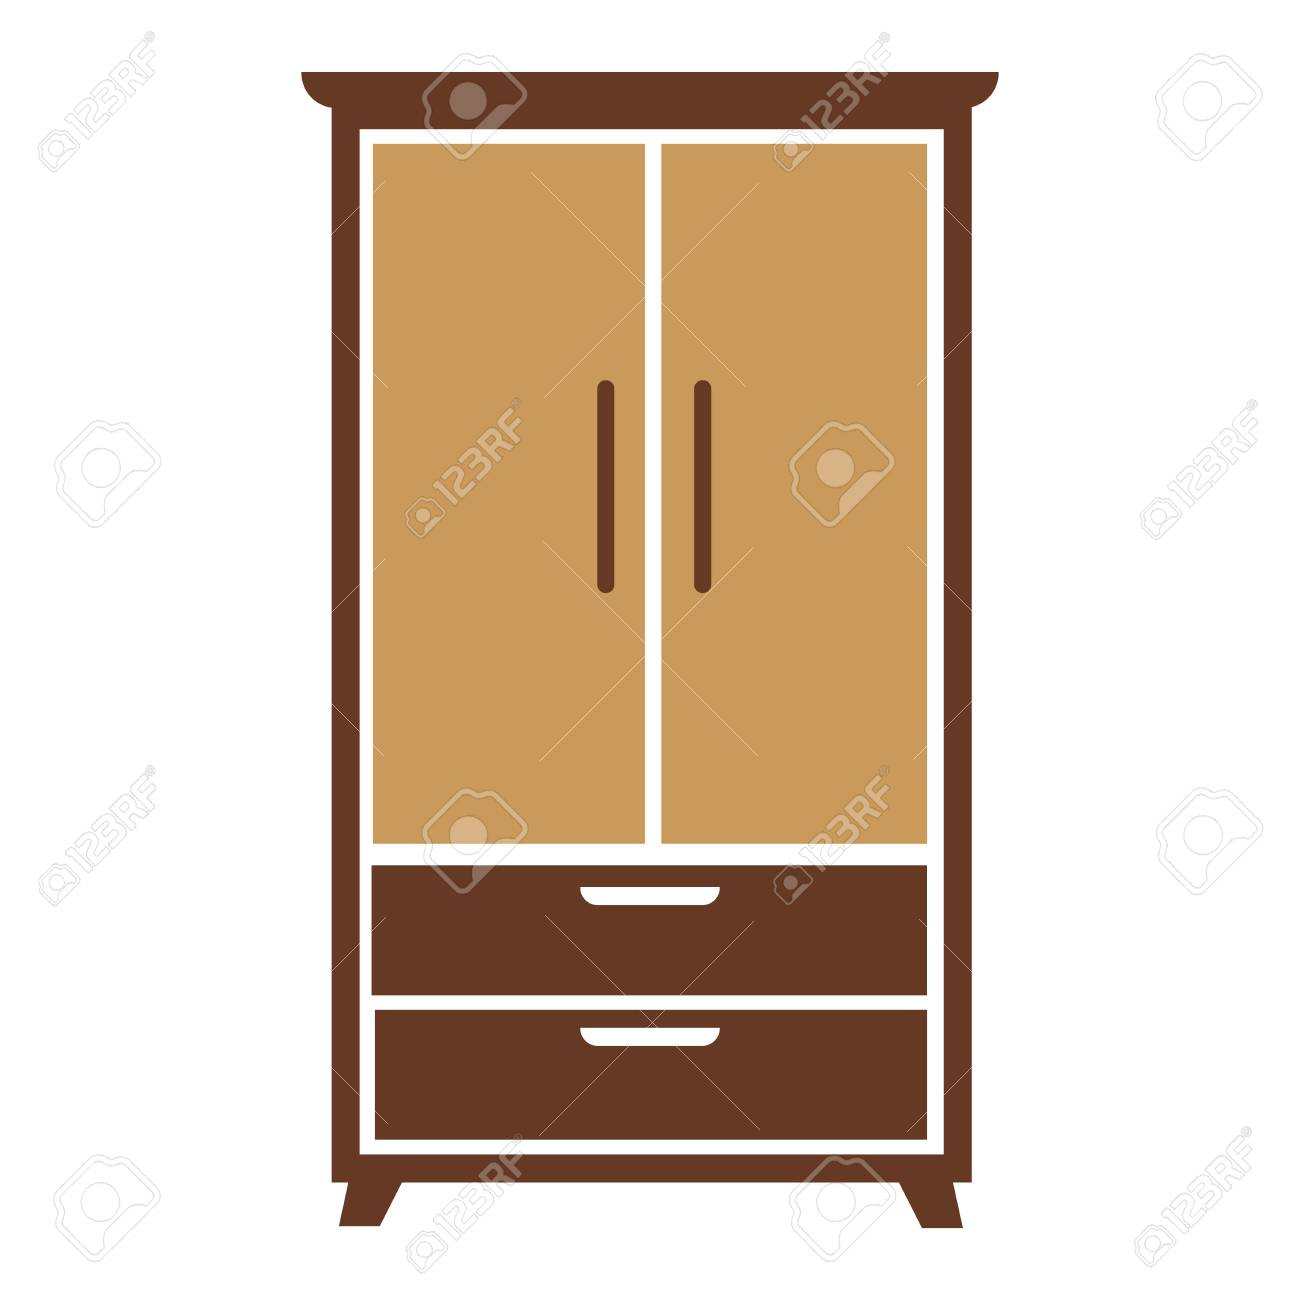 Brown Wooden Simple Cartoon Wardrobe With Beige Chest Of Drawers And Specious Cabinets Big Isolated On